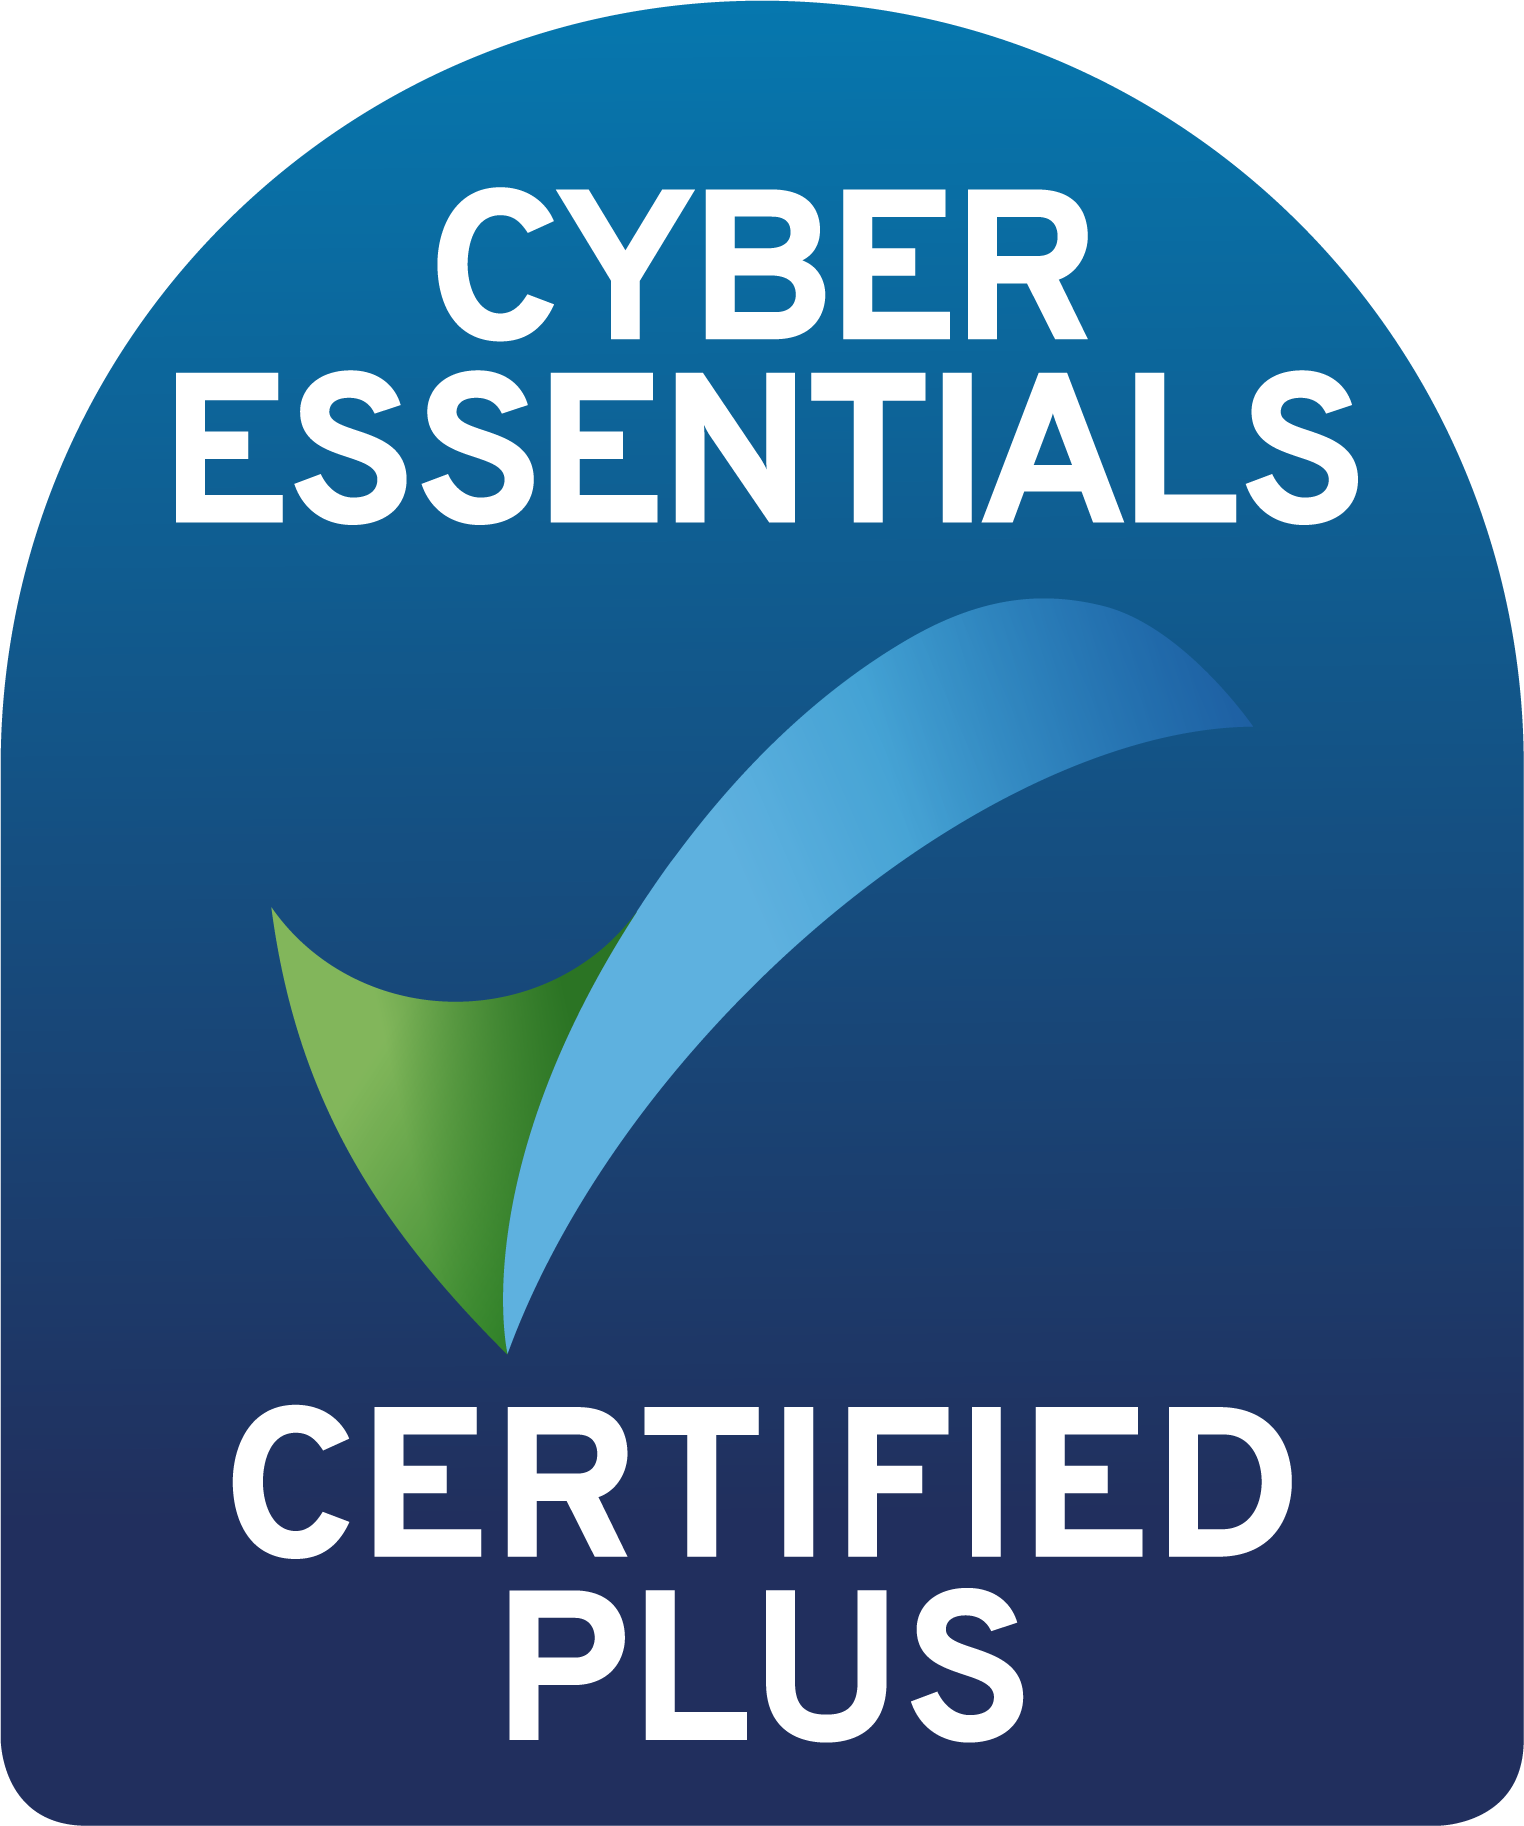 Cyber Essentials Plus Checkmark